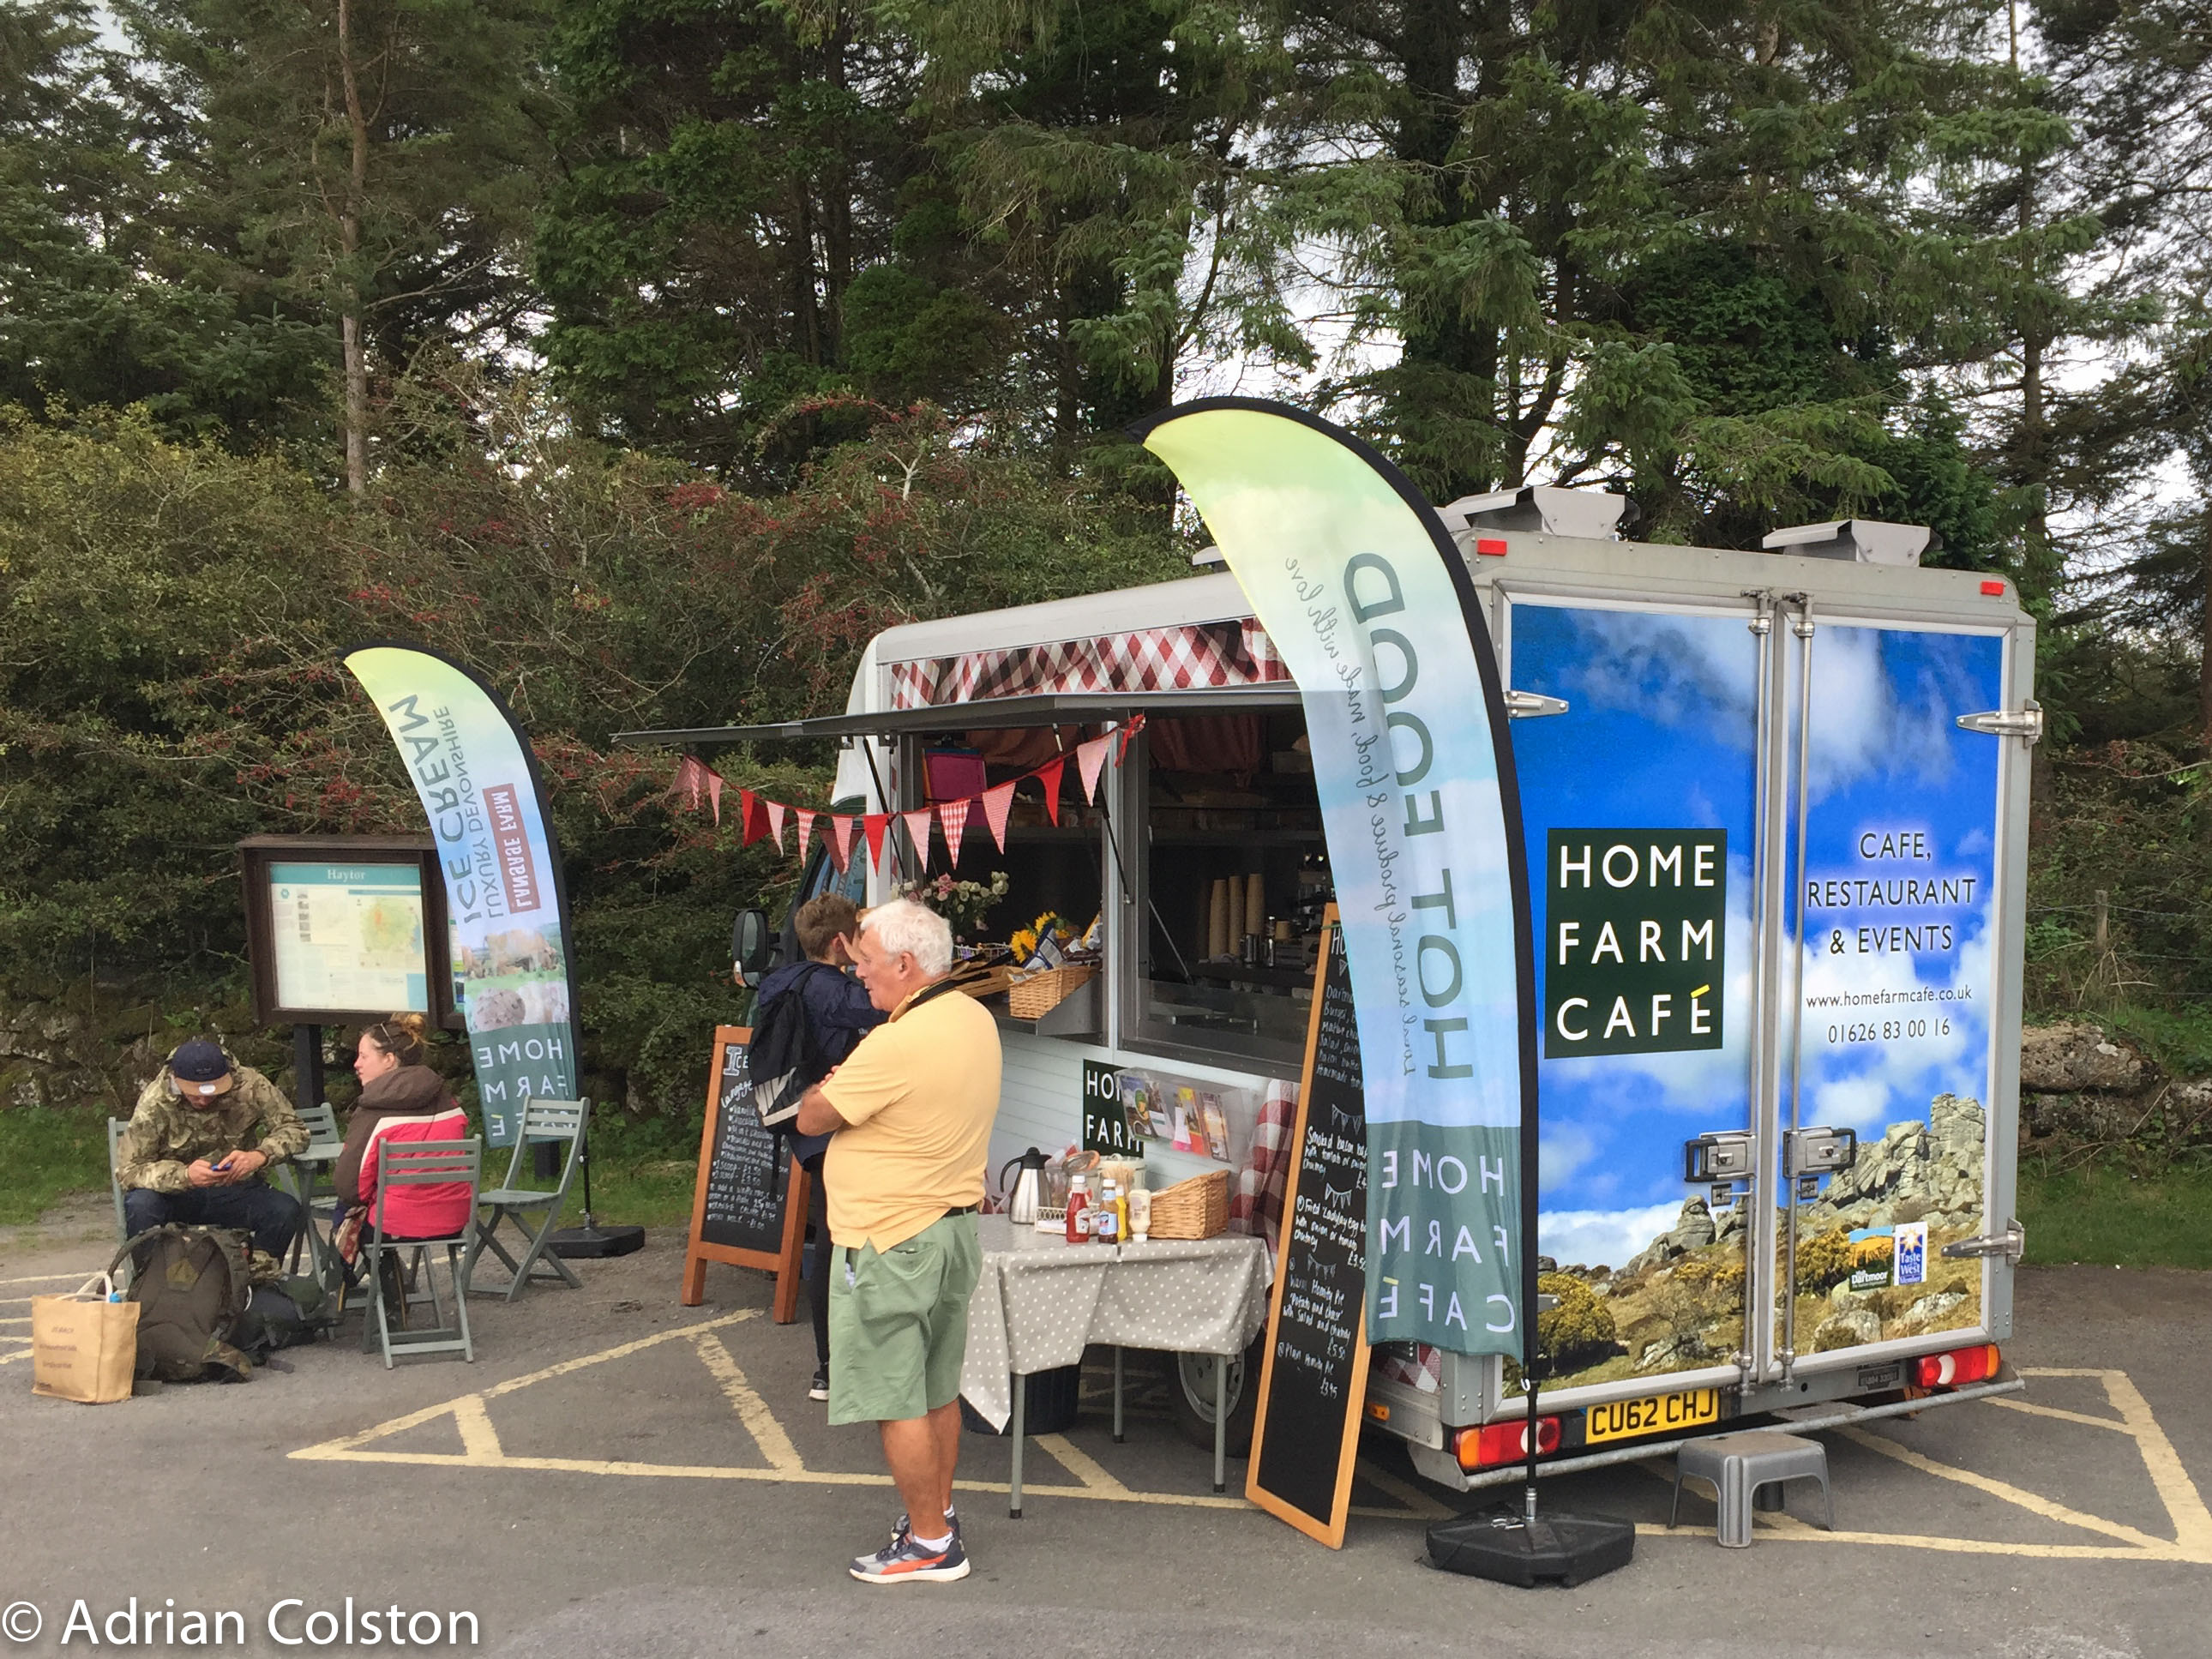 Back Down To The Car Park For A Cup Of Tea And Piece Flapjack With My Old Friends From Home Farm Cafe